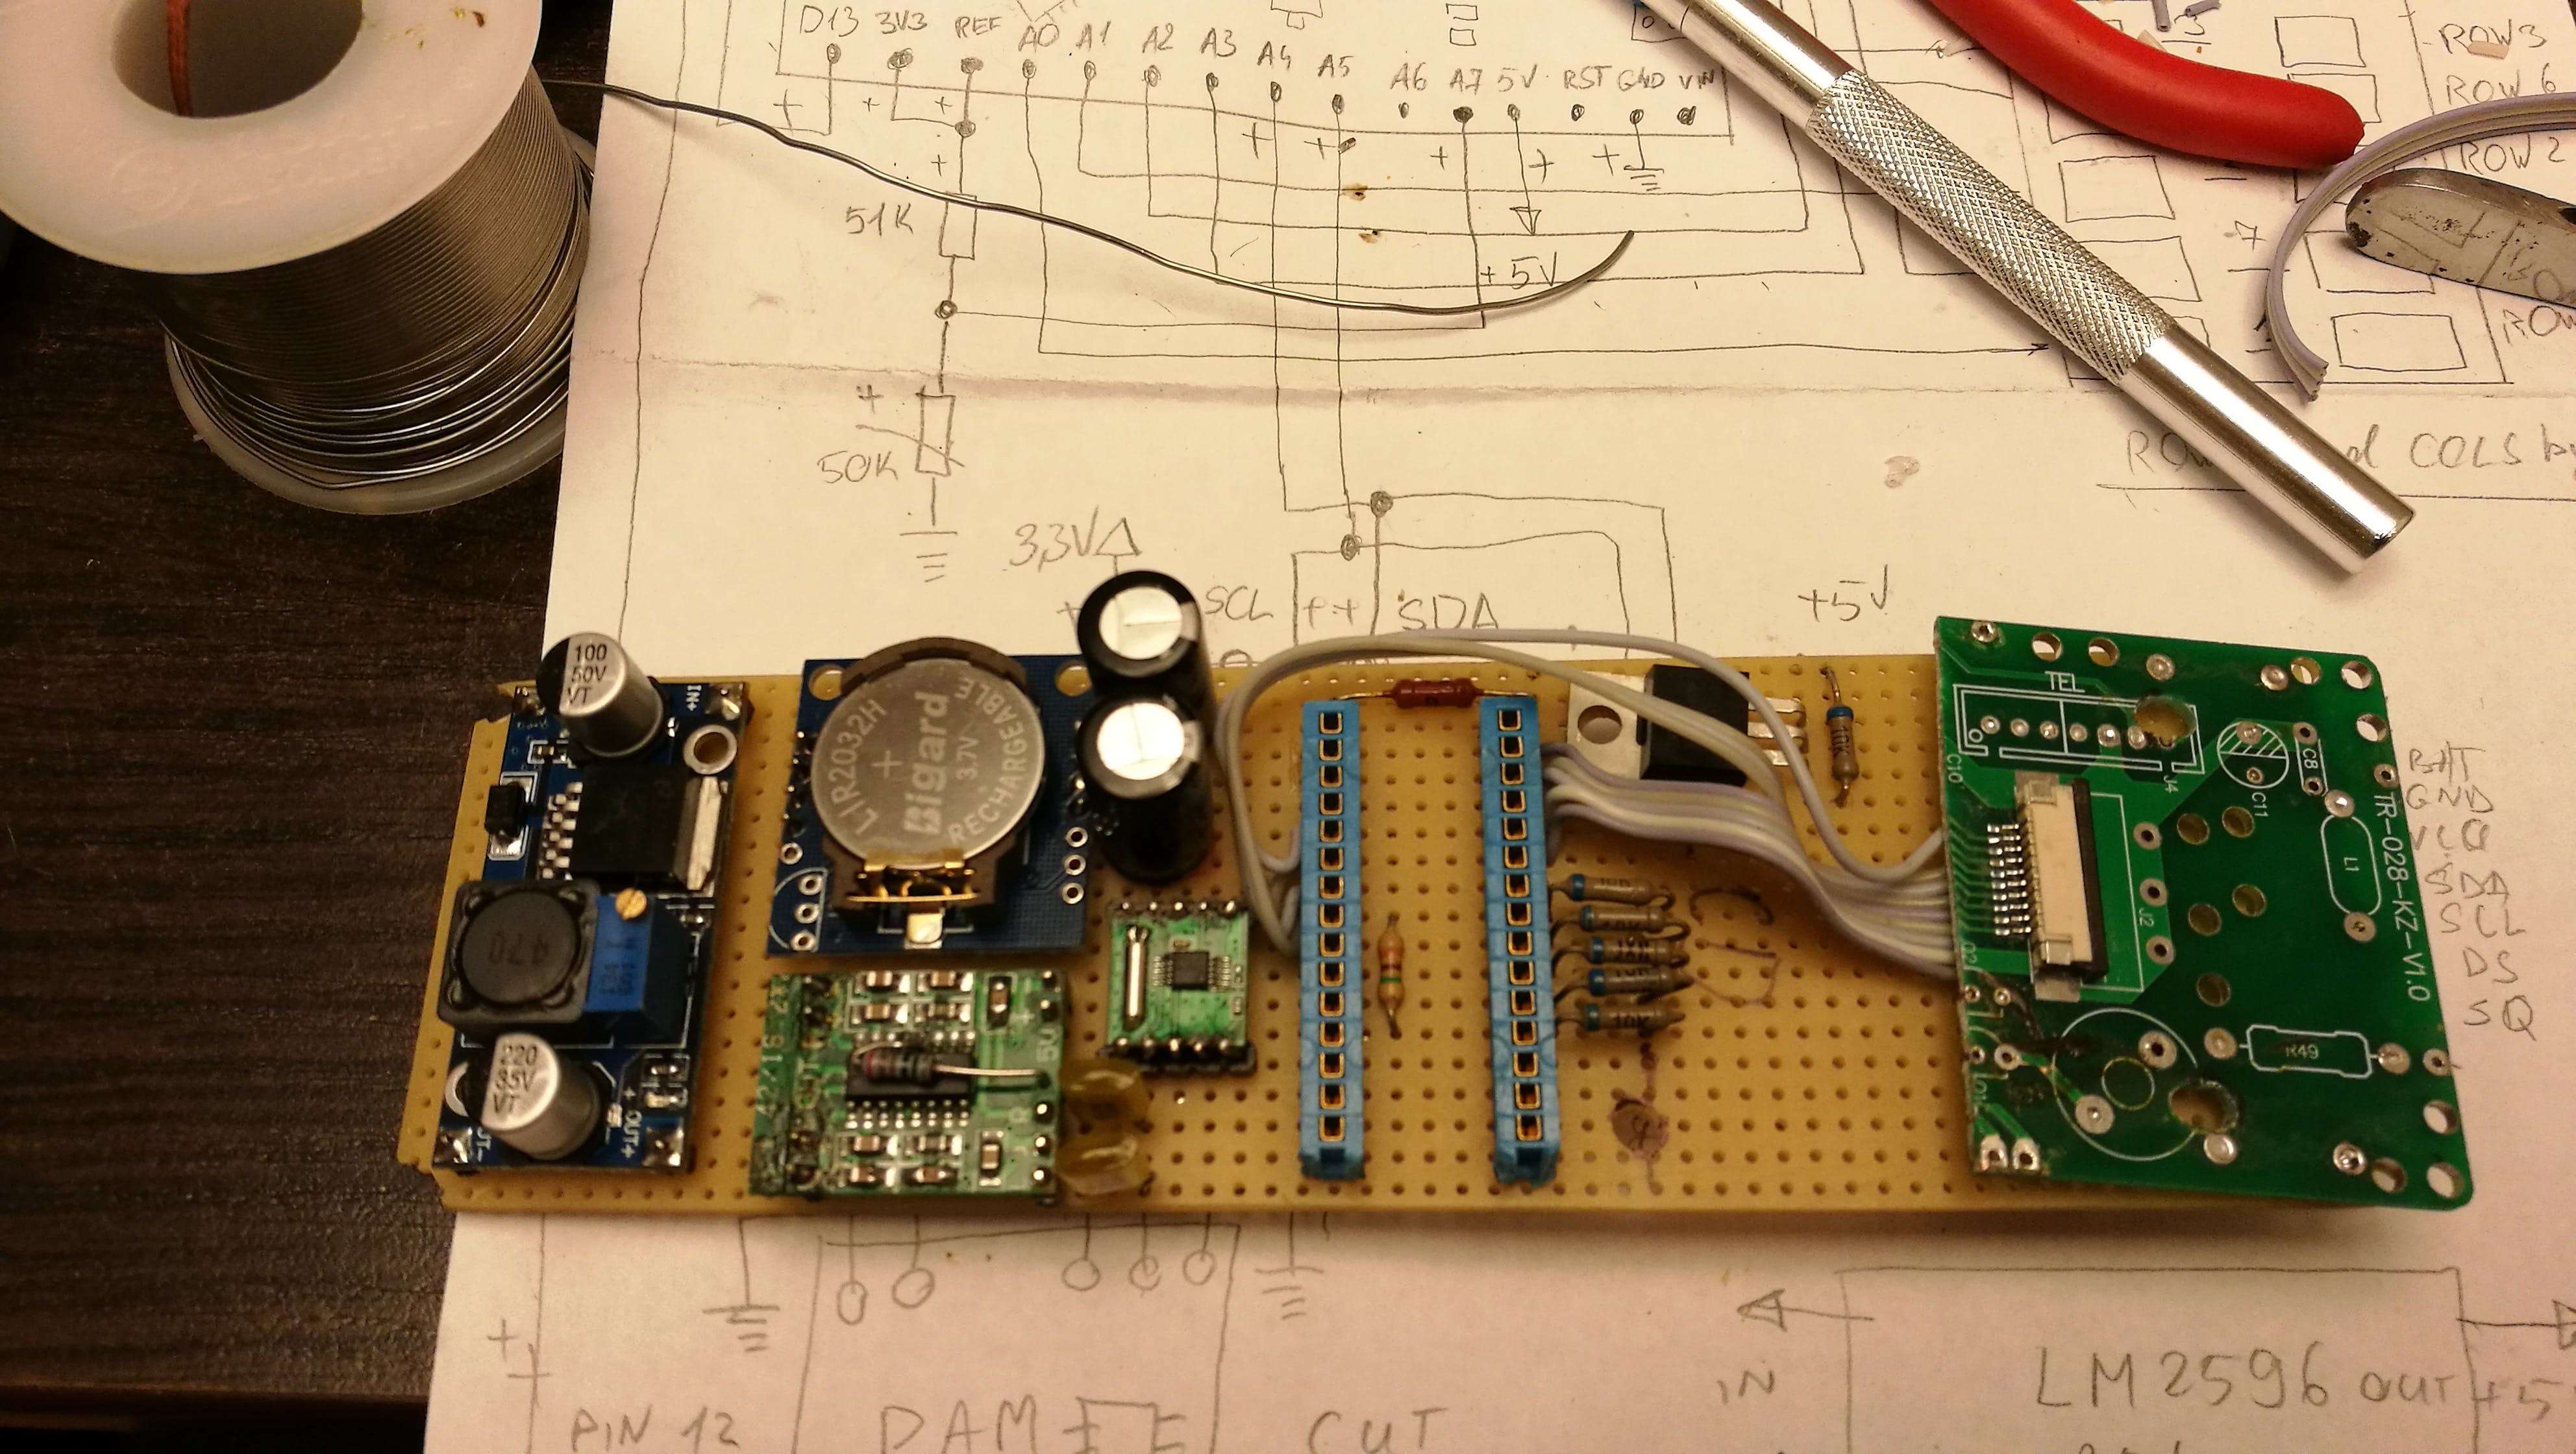 When everything is working on breadboard, it's time to move modules to another board.